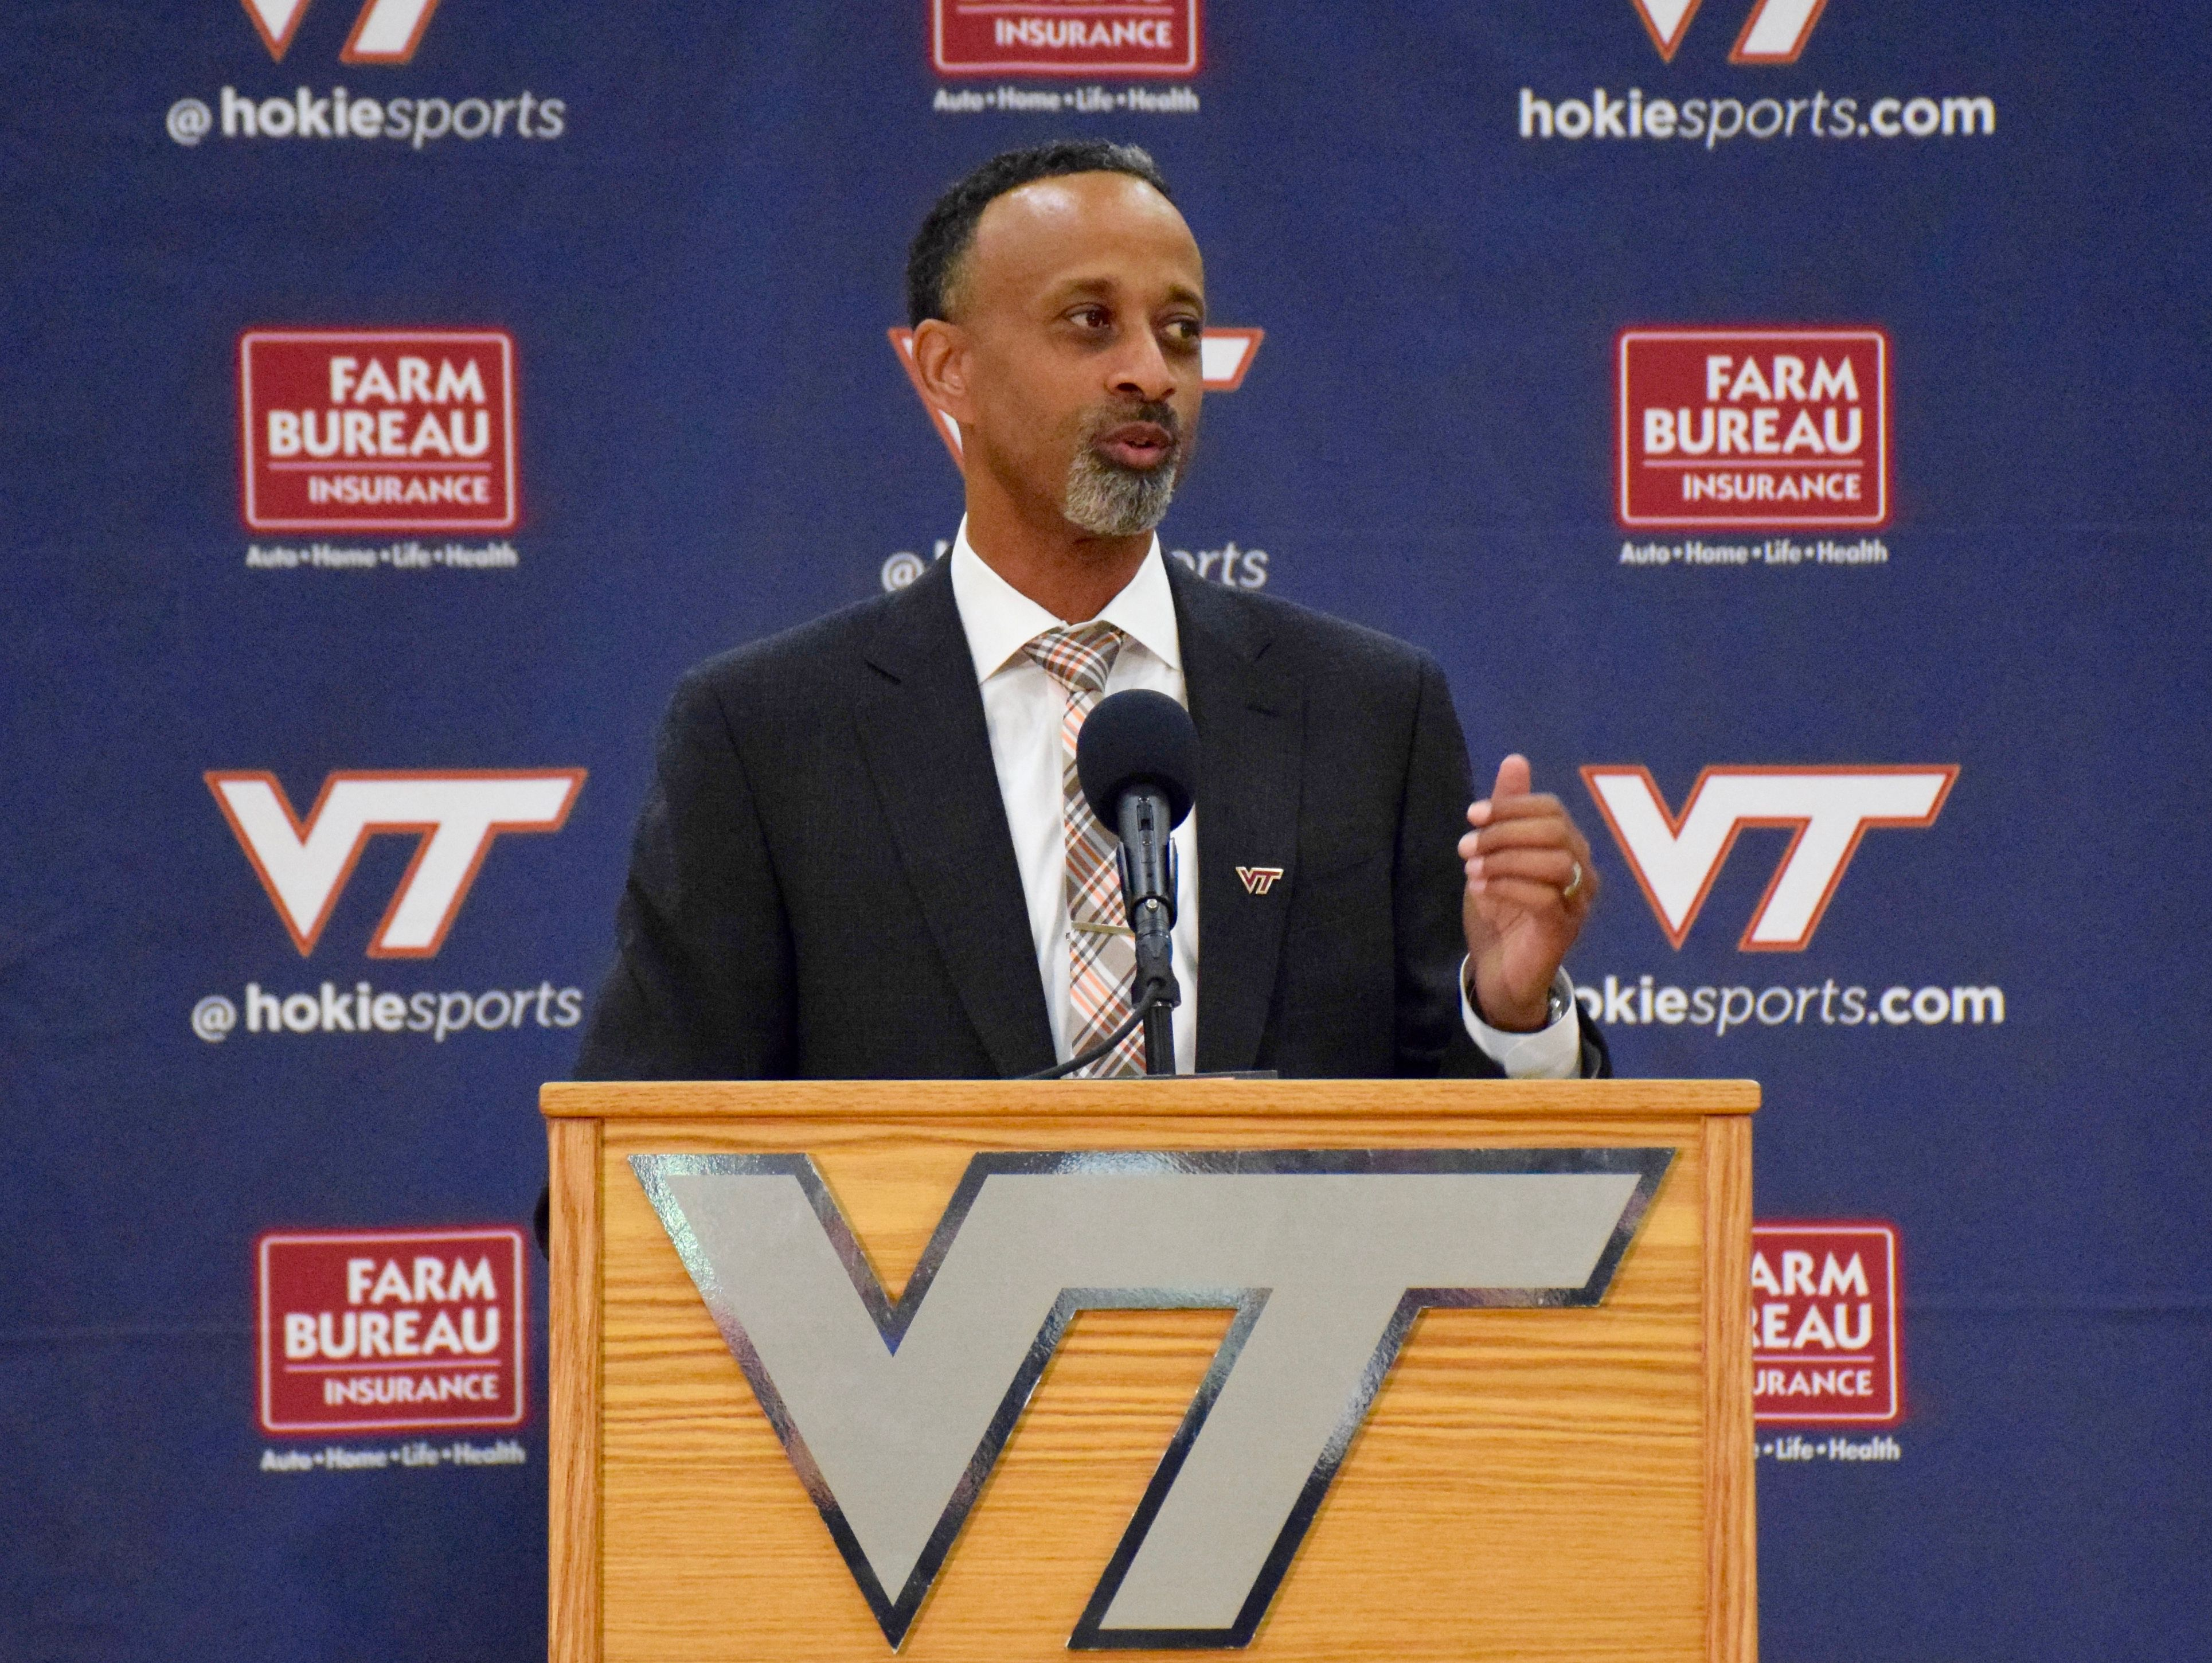 Kenny Brooks, Virginia Tech's new women's basketball coach, speaks to the media at his introductory press conference Wednesday n Blacksburg.